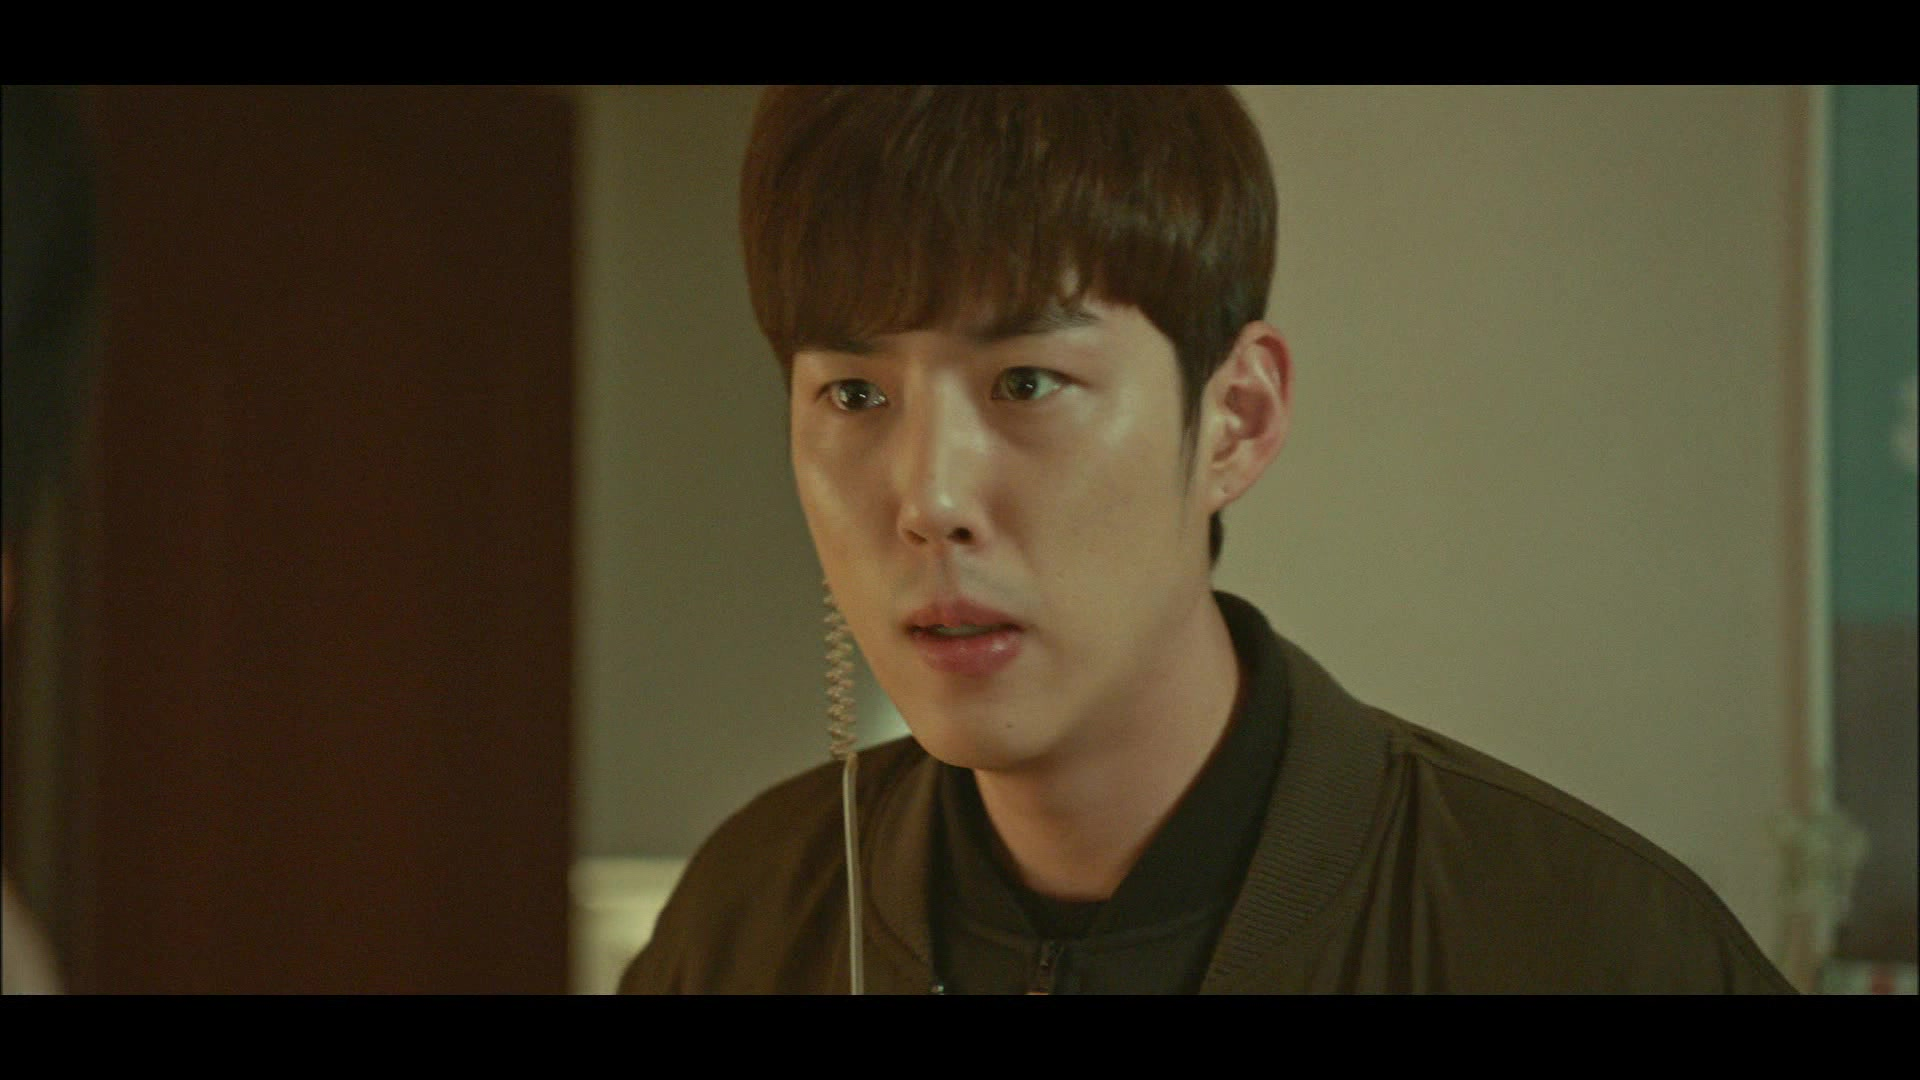 Voice Episode 3: Healing Mother's Two Faces (2)